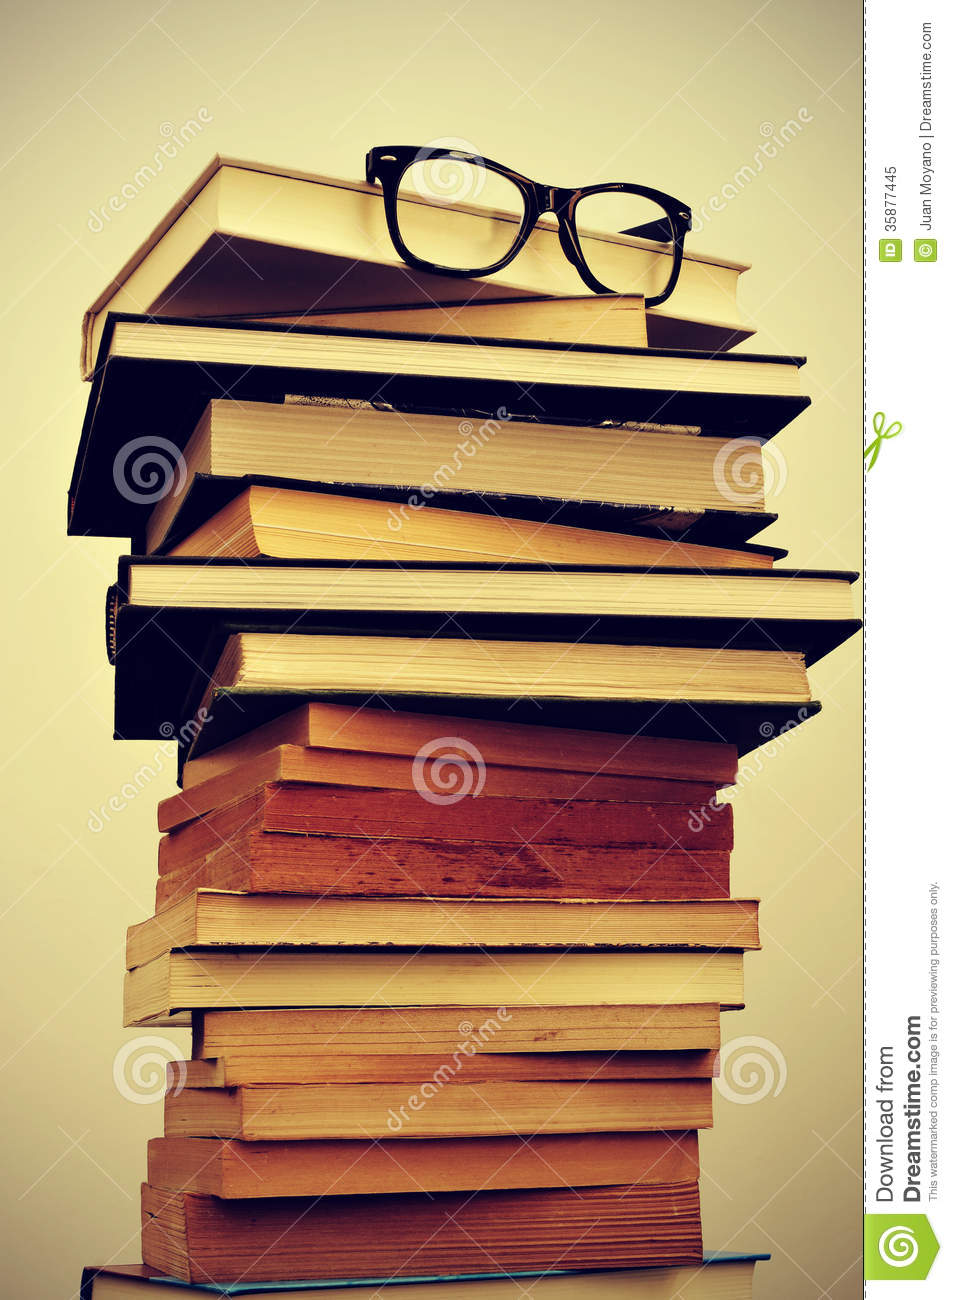 glasses on book - photo #11